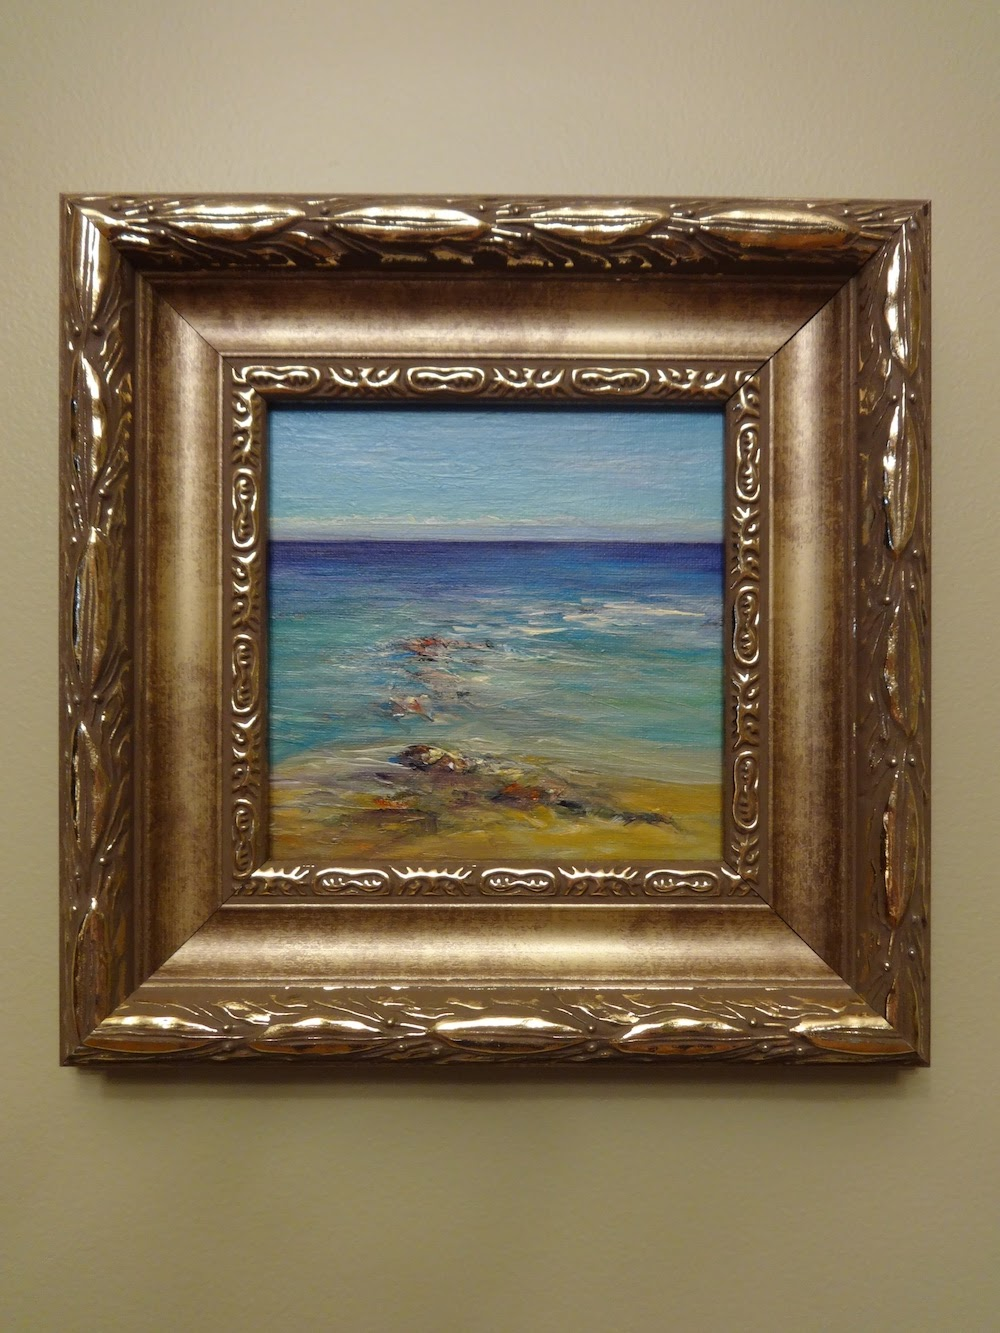 this impressionist style painting is available in the framed and matted section of my online gallery ornate frames are not to everyones taste